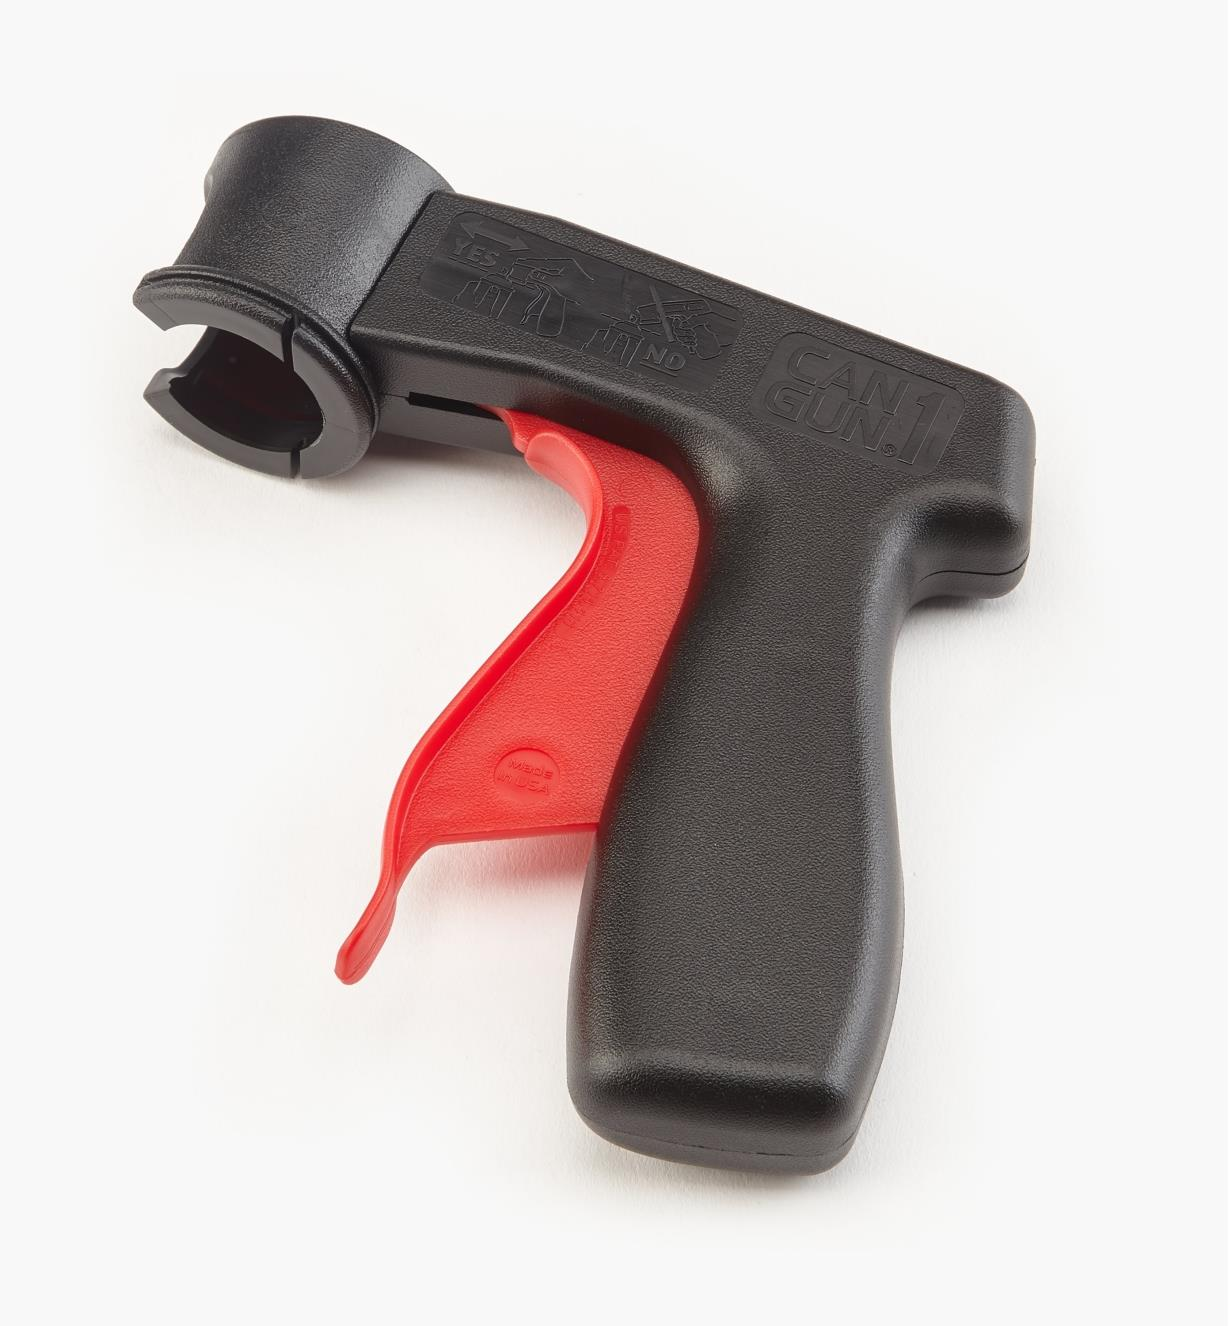 27K0690 - Spray Can Trigger Handle